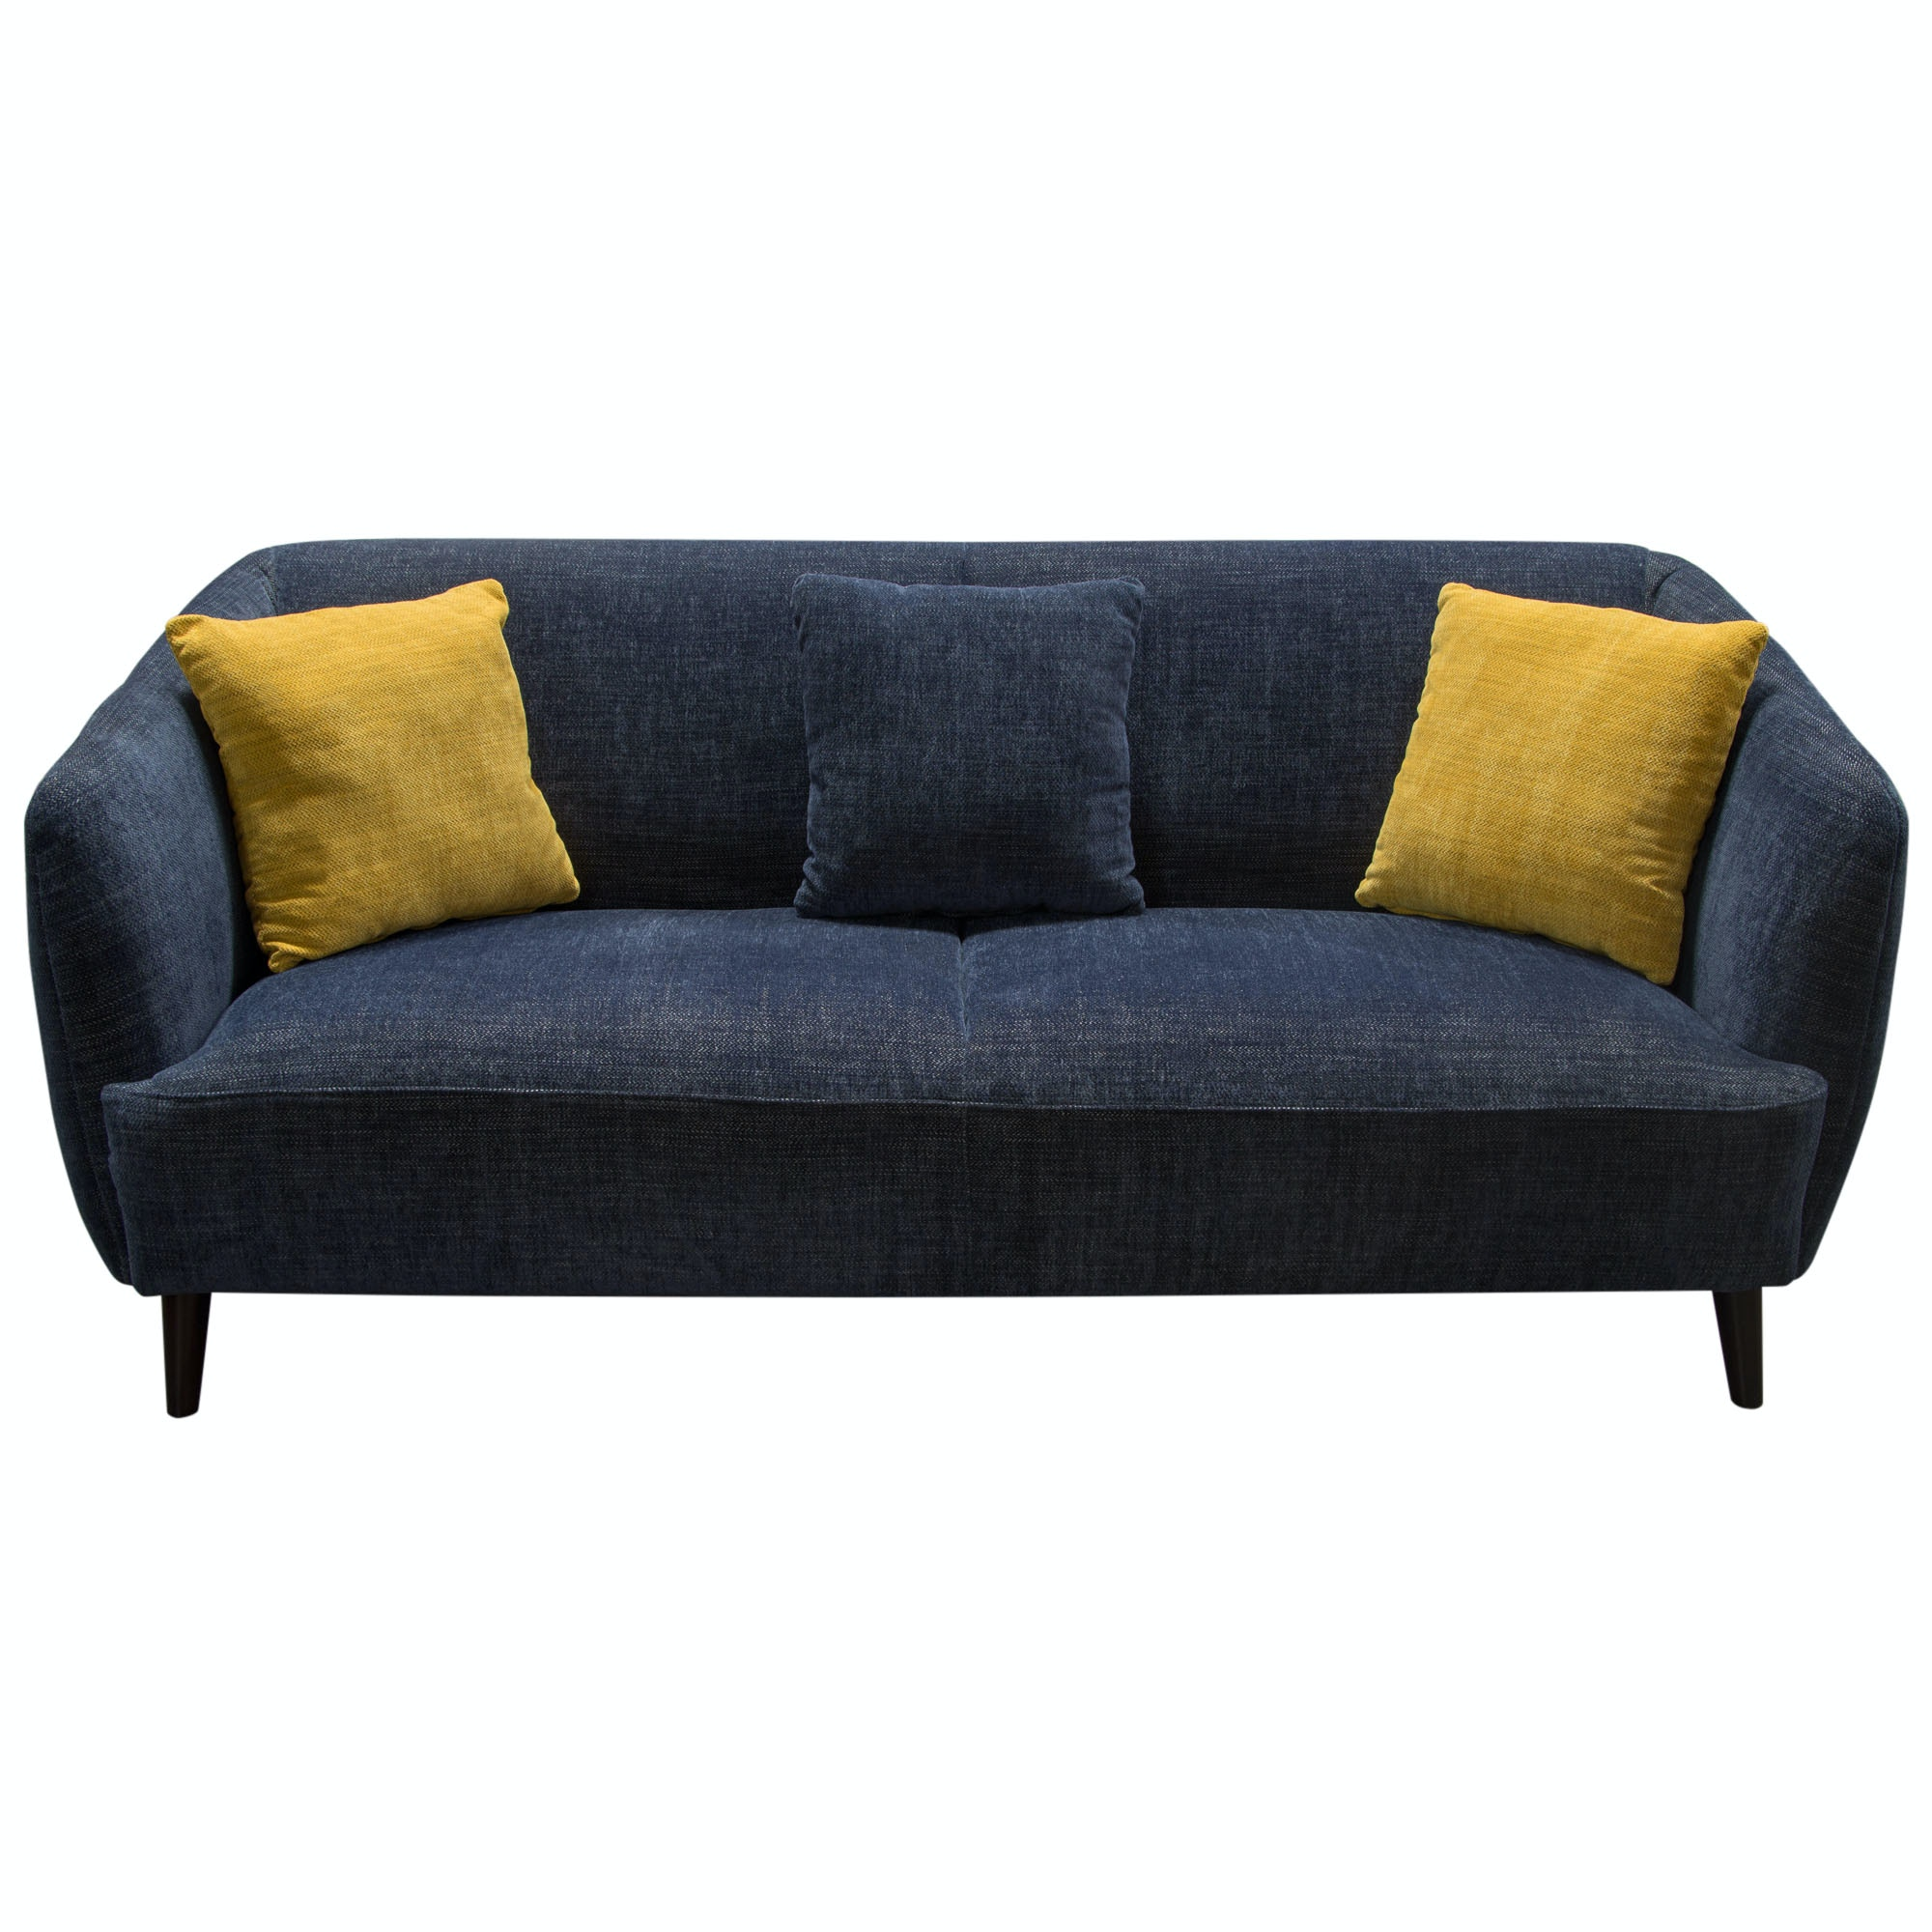 Diamond Sofa DeLuca Midnight Blue Fabric Sofa DELUCASOBU